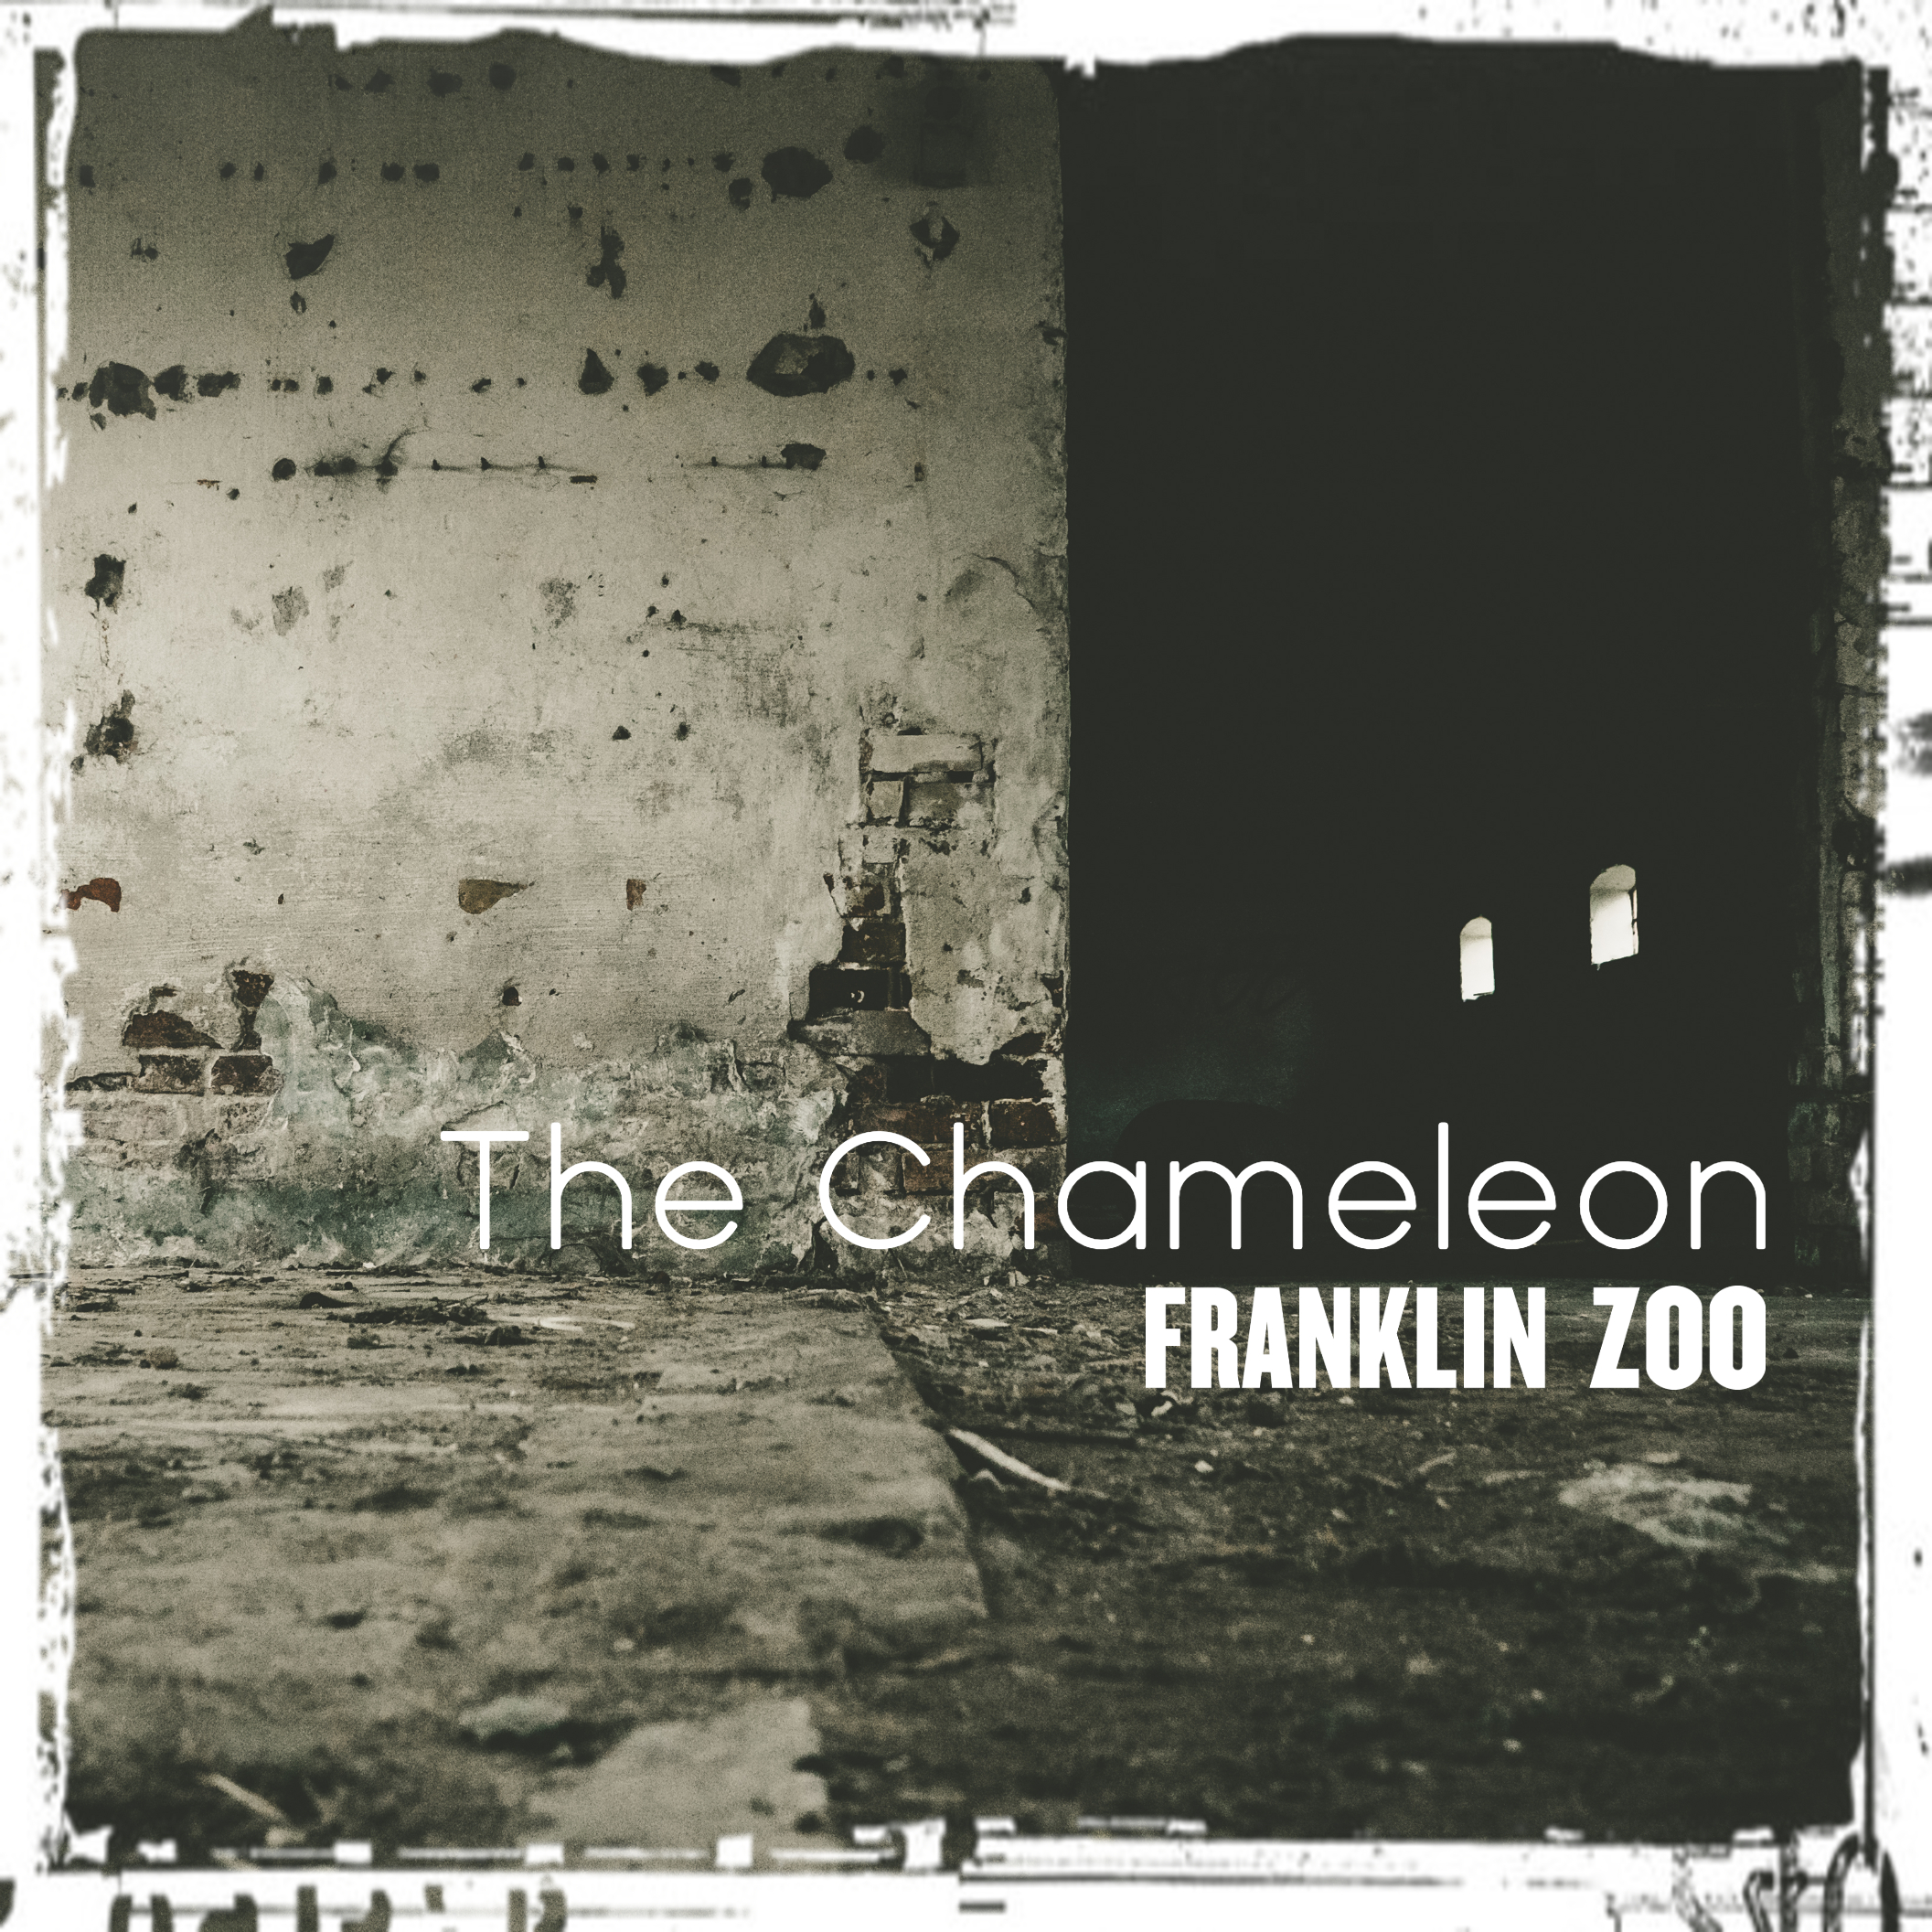 Franklin Zoo – The Chameleon (single)